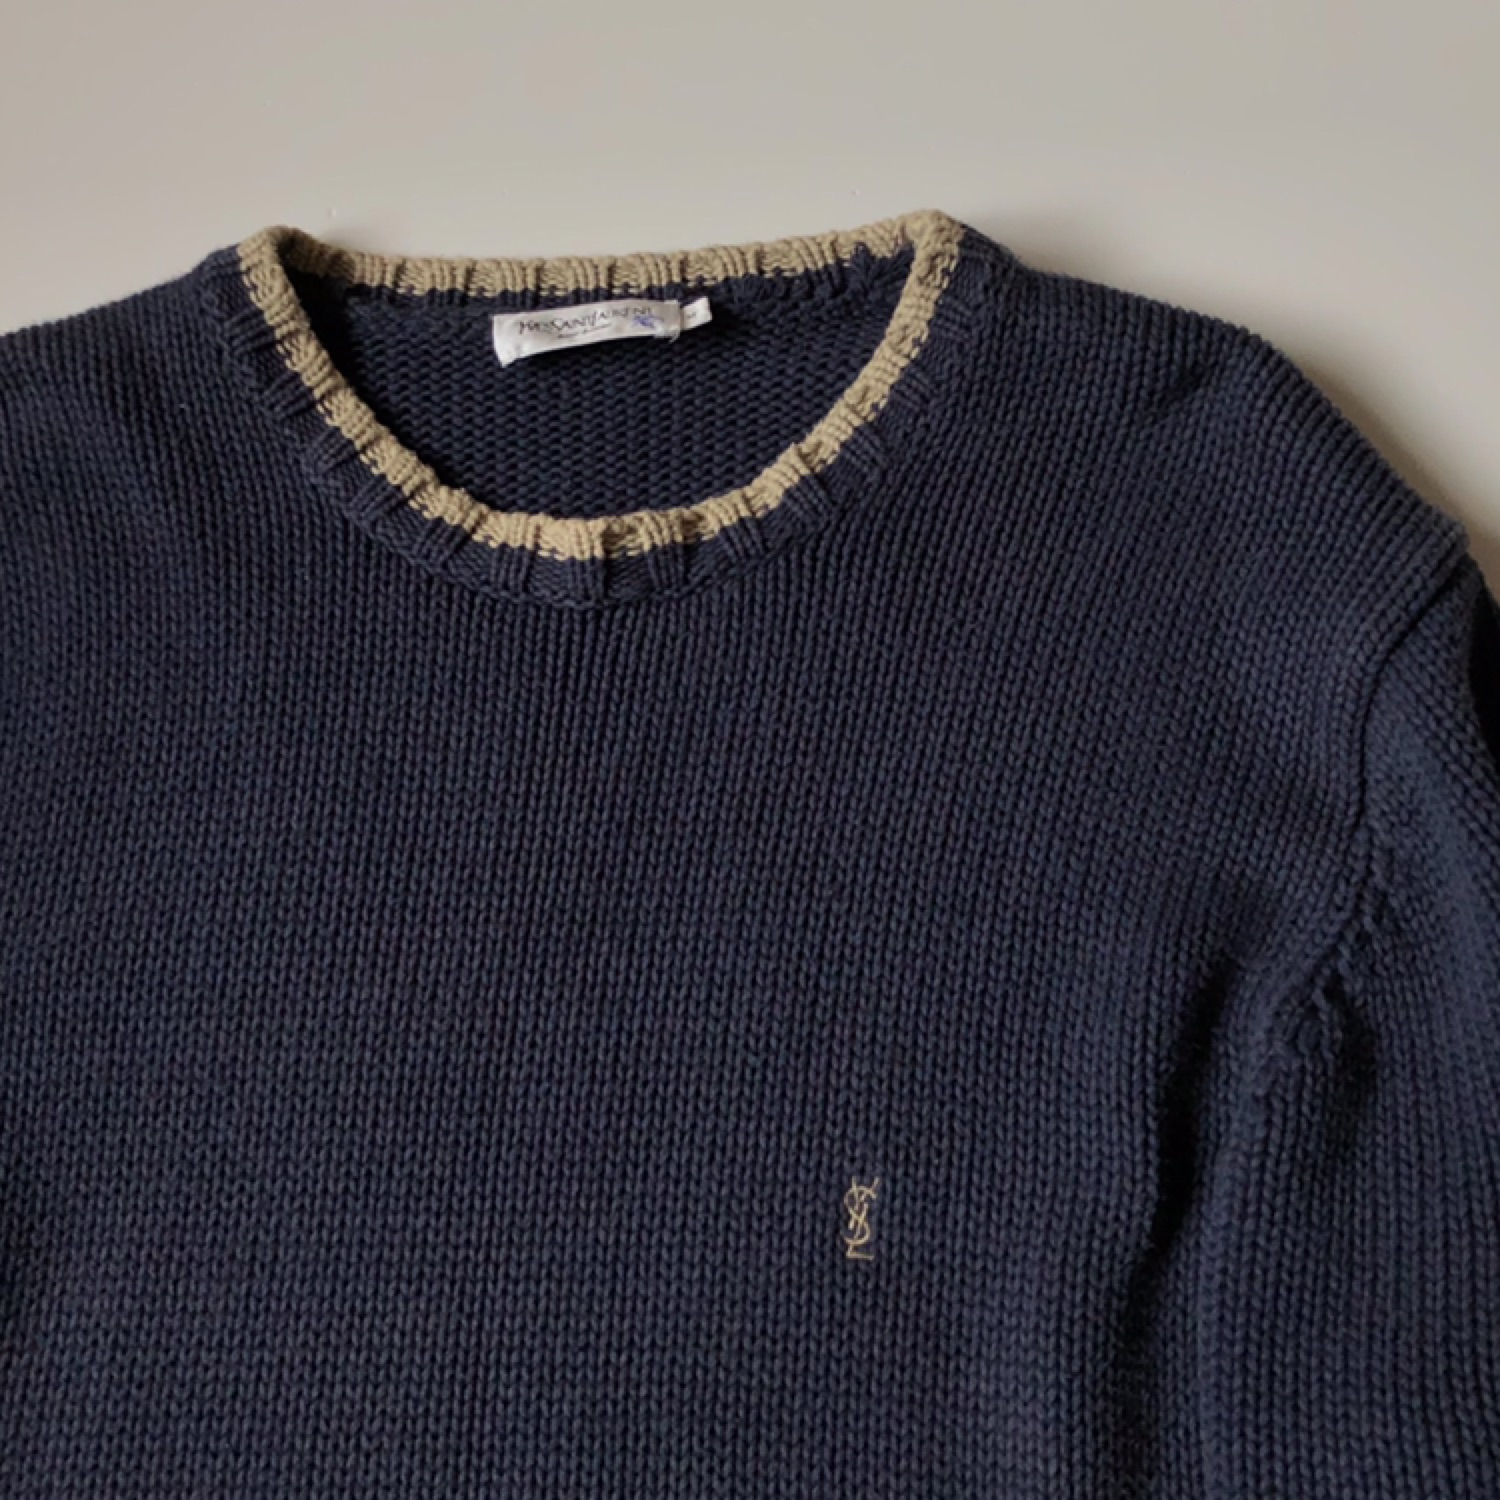 Yves Saint Laurent Knit Vintage